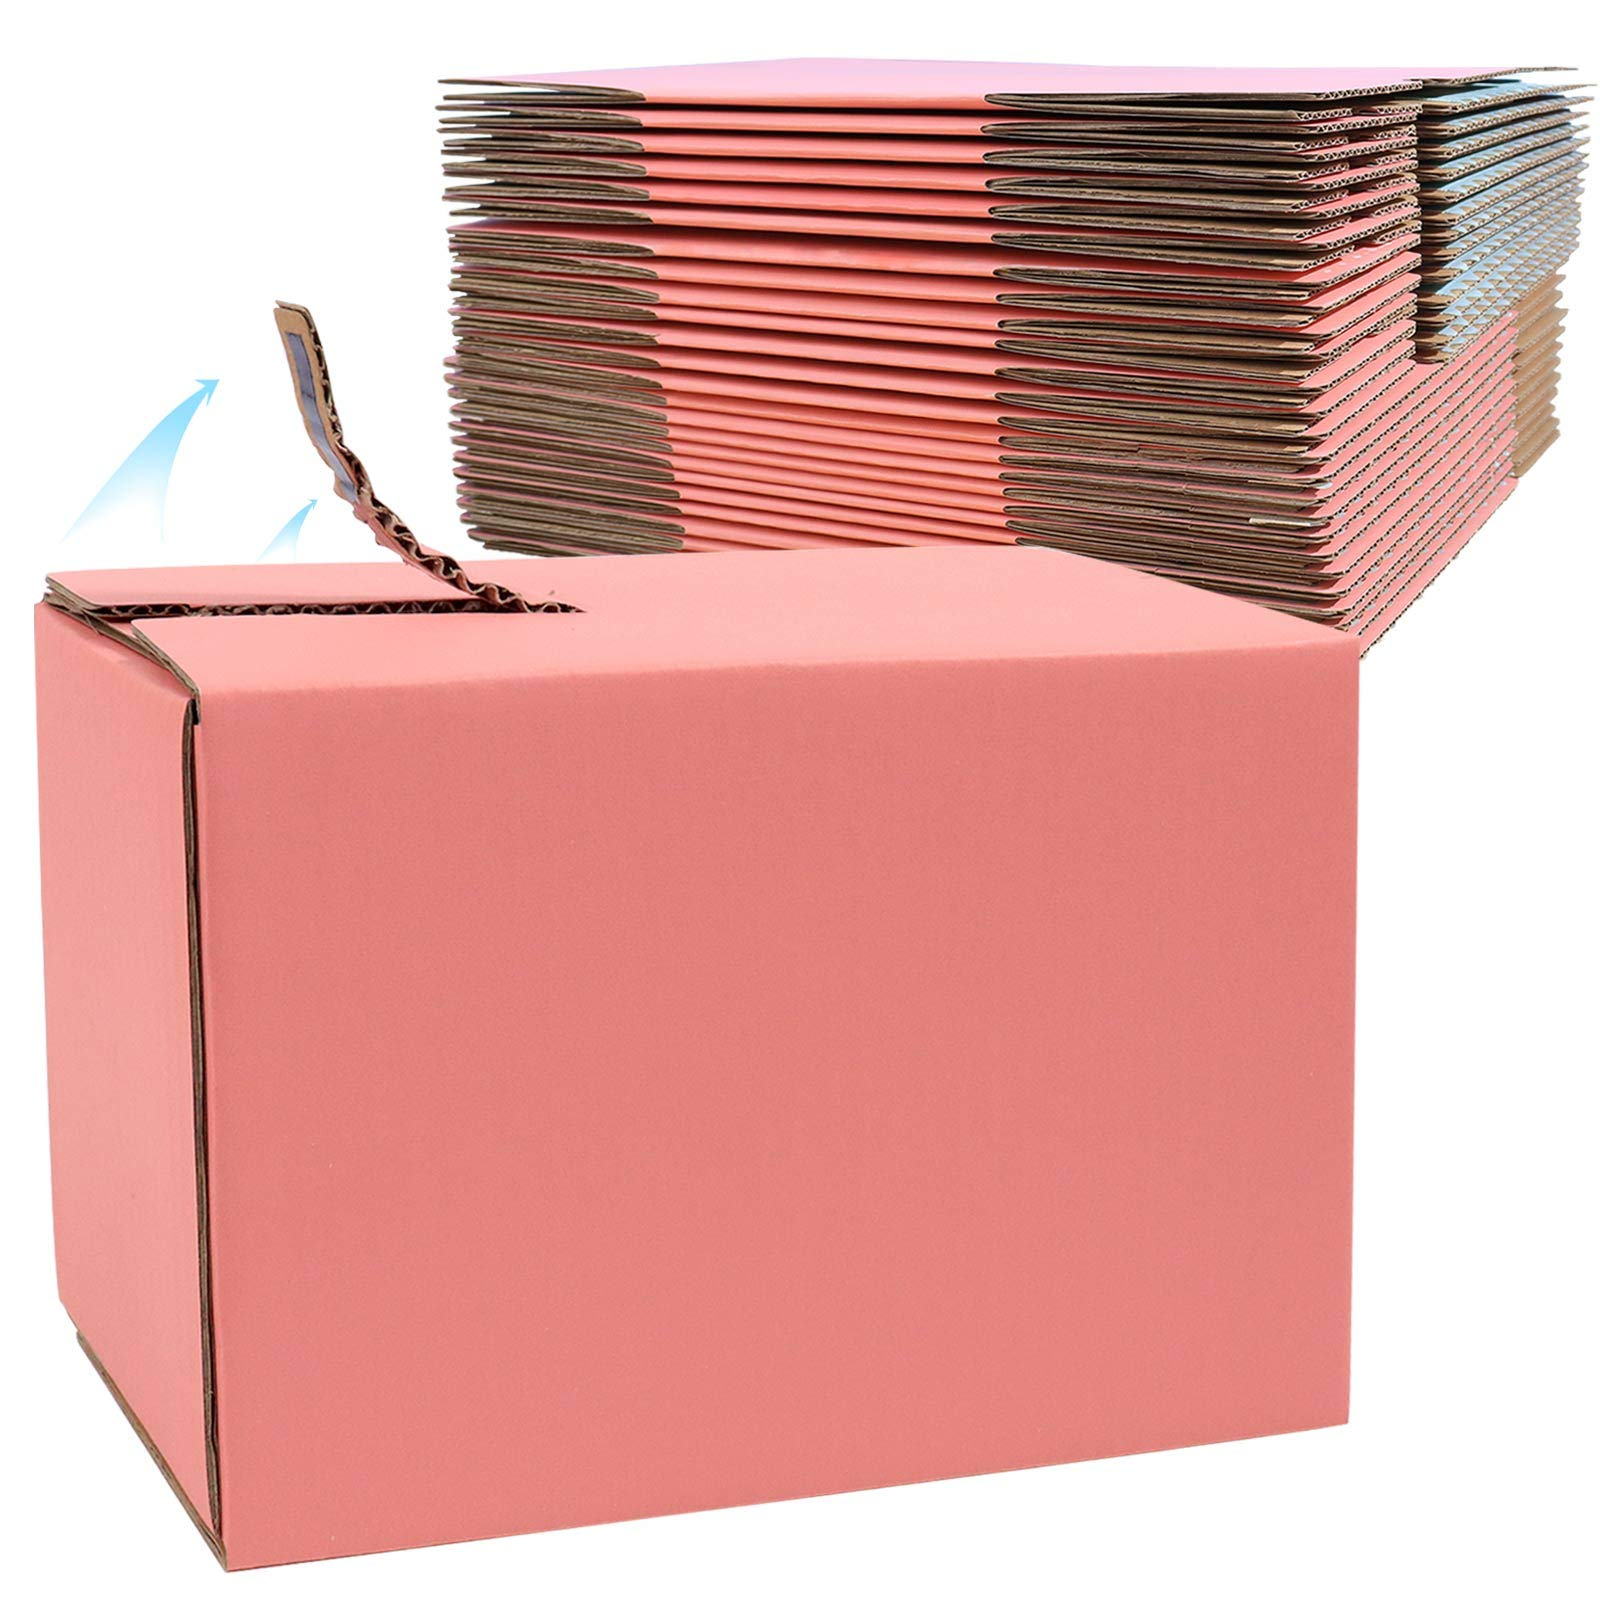 Pink Corrugated Mailer Boxes, 25 Pack 5 x 3 x 3.5 inch Sturdy Cardboard Shipping Boxes, Self Stick Zipper Packaging Boxes for Gift Mailing Business